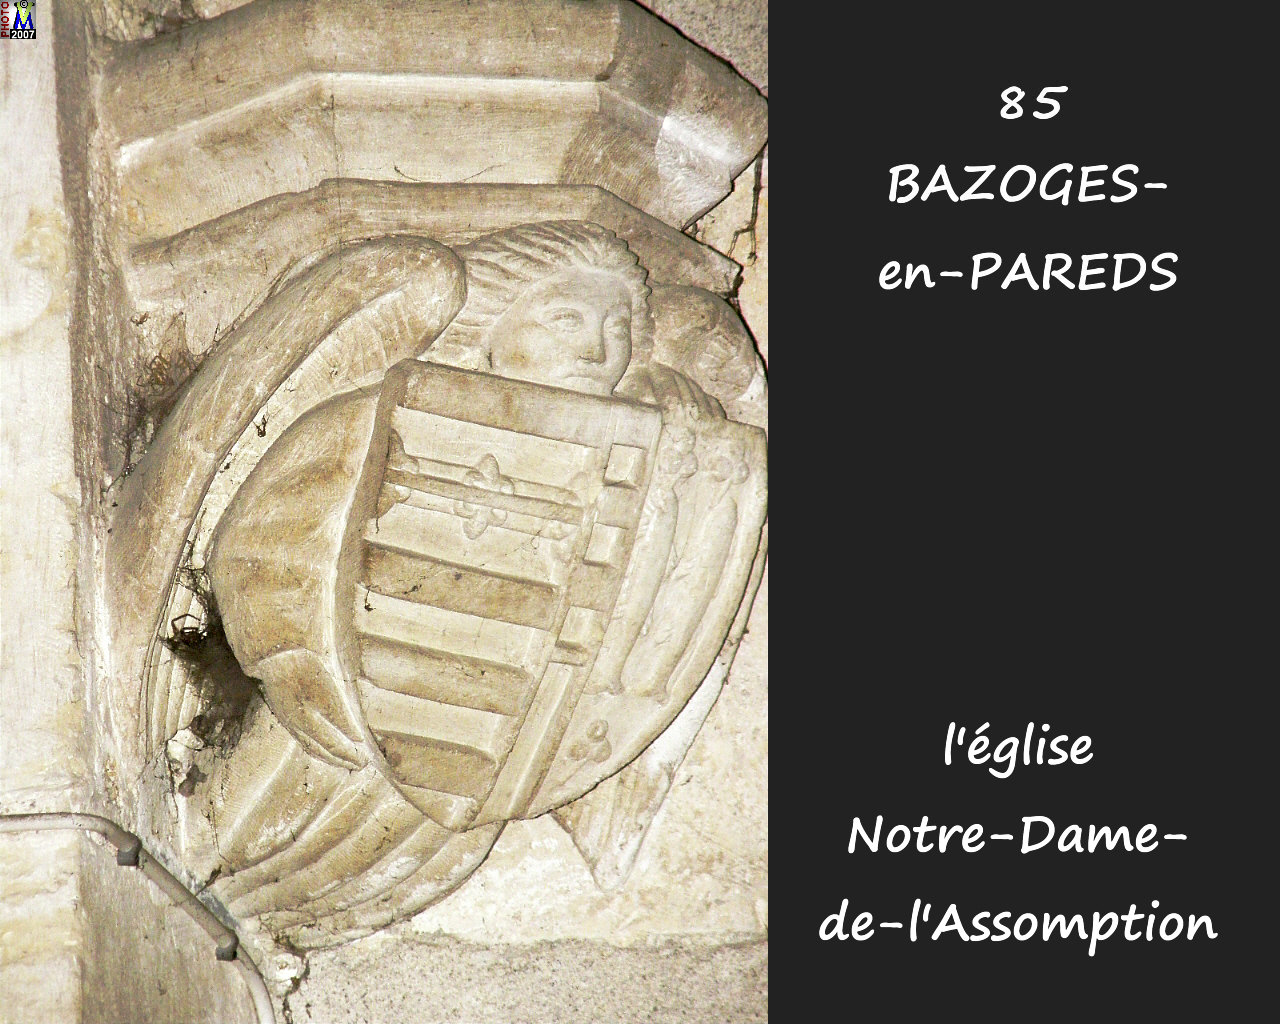 85BAZOGES-PAREDS_eglise_208.jpg